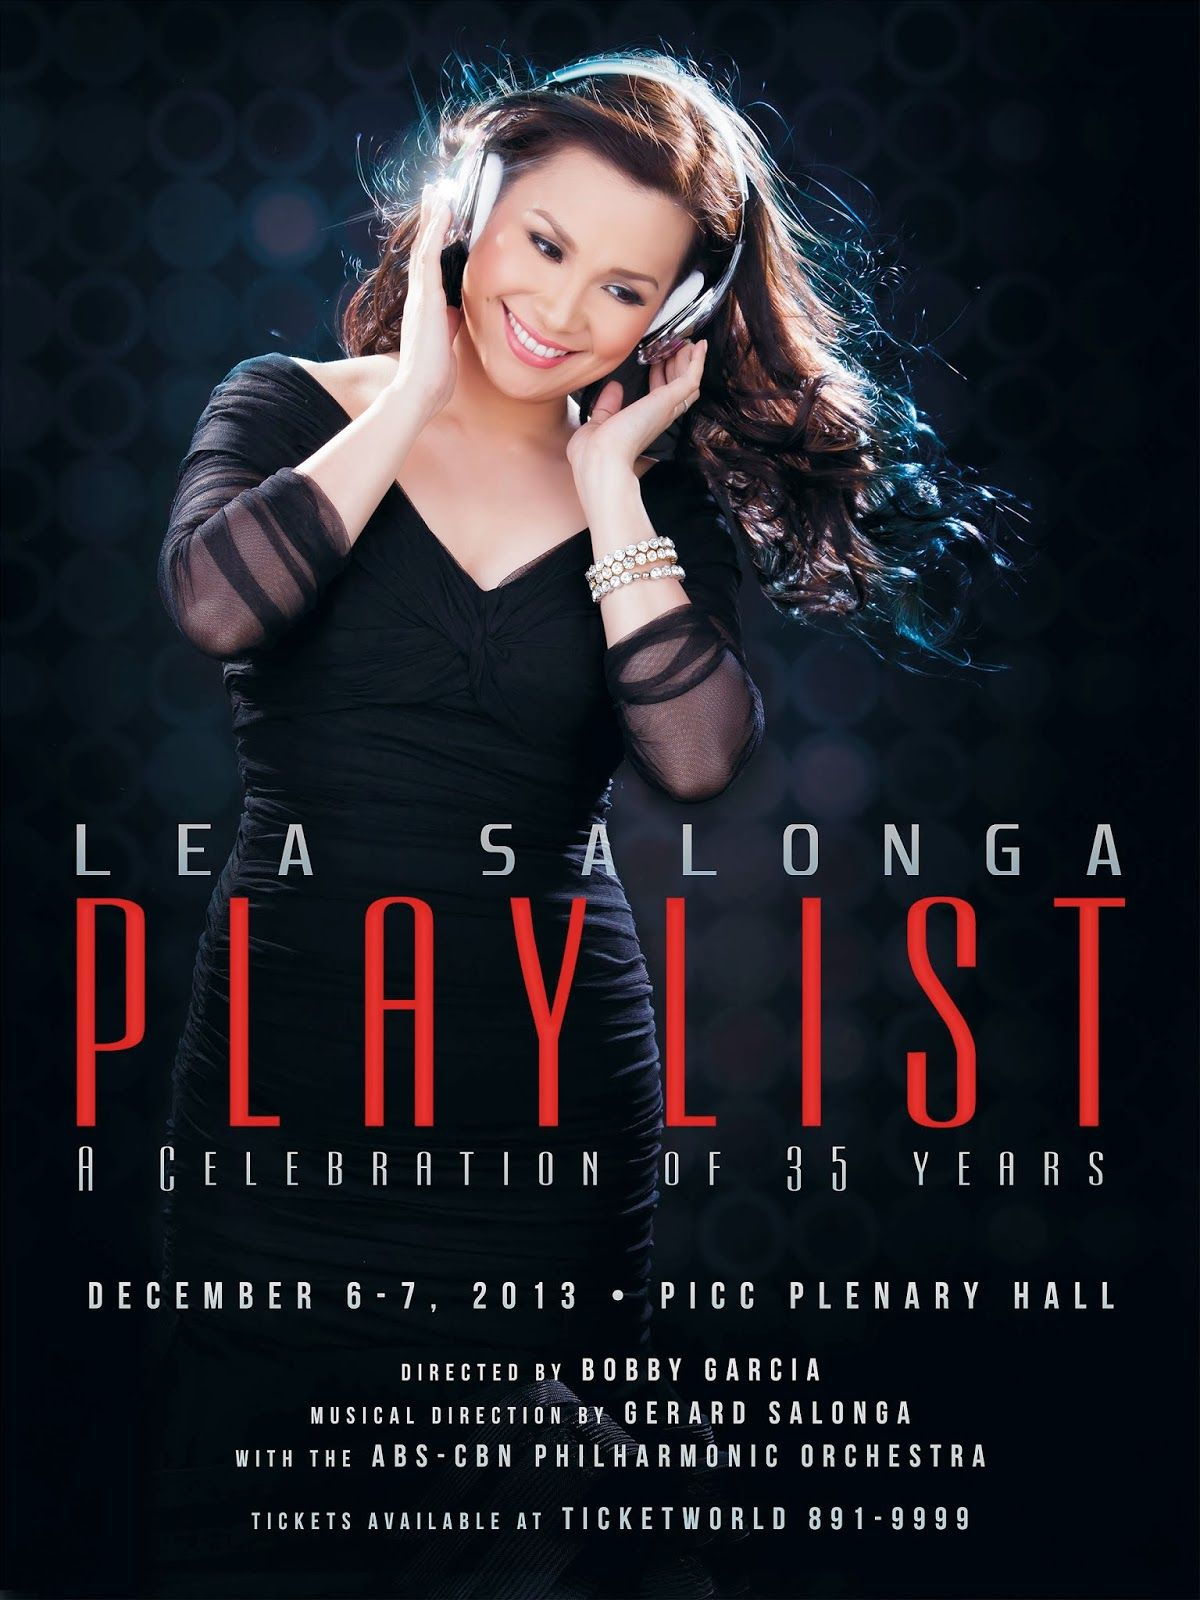 Lea Salong Playlist A Celebration Of 35 Years Now Showing On The Abs Cbn Television Channel Starting 10pm Manila Time Lea Salonga 35th Anniversary Concert